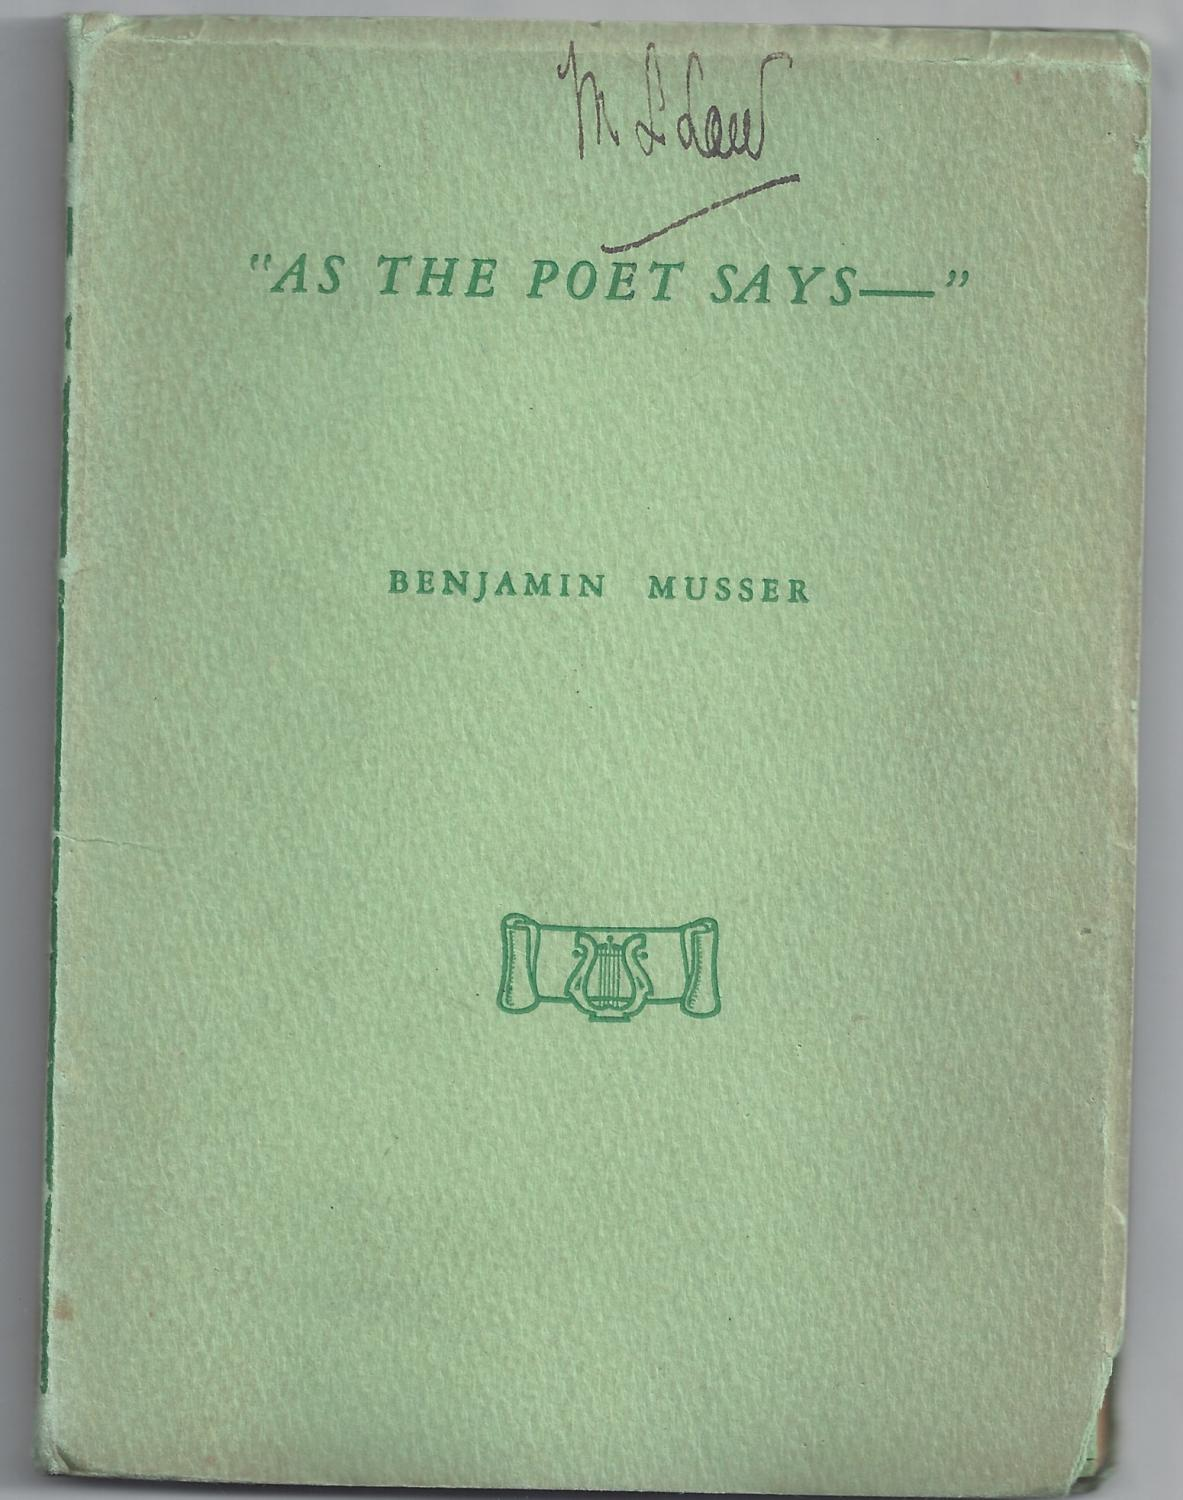 As The Poet Says Musser, Benjamin Very Good Softcover Beautiful Limited and First Edition. #147 of only 200 copiers printed. Green card-stock covers. 64pp. Square, tight and clean throughout. Some edge we